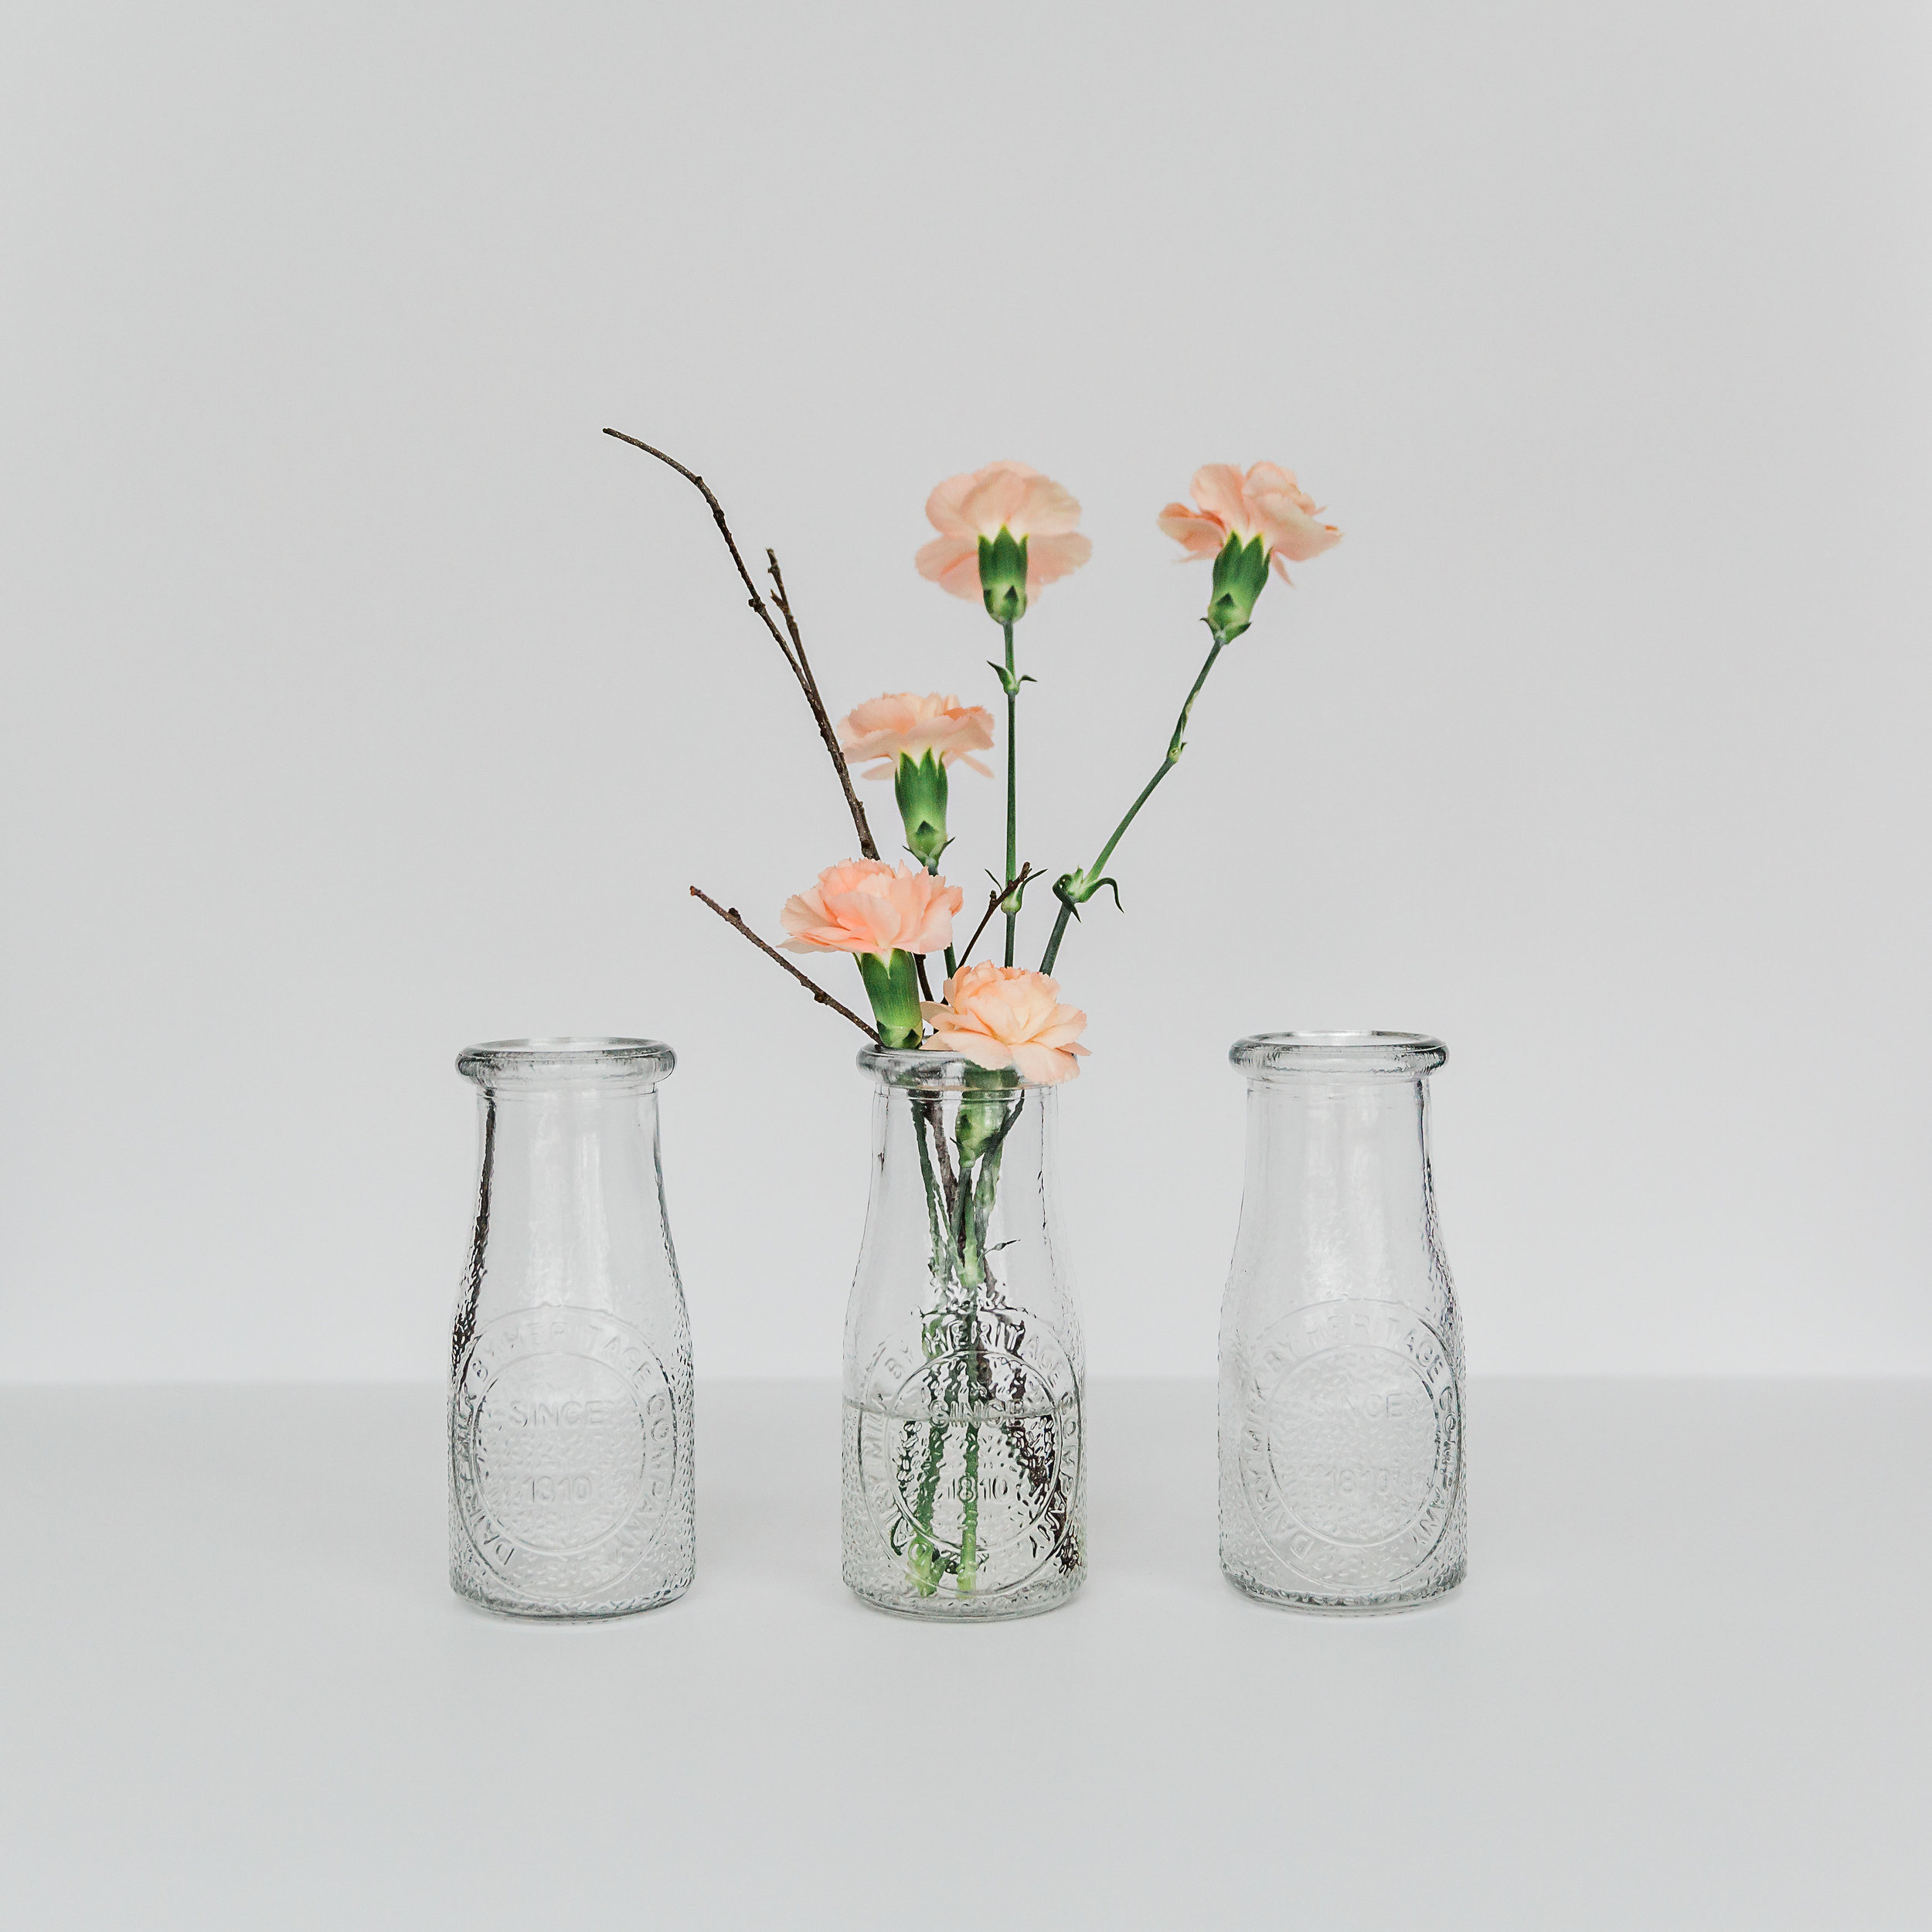 Glass Milk Bottle  height: 5 inches >>>$0.50 each<<<